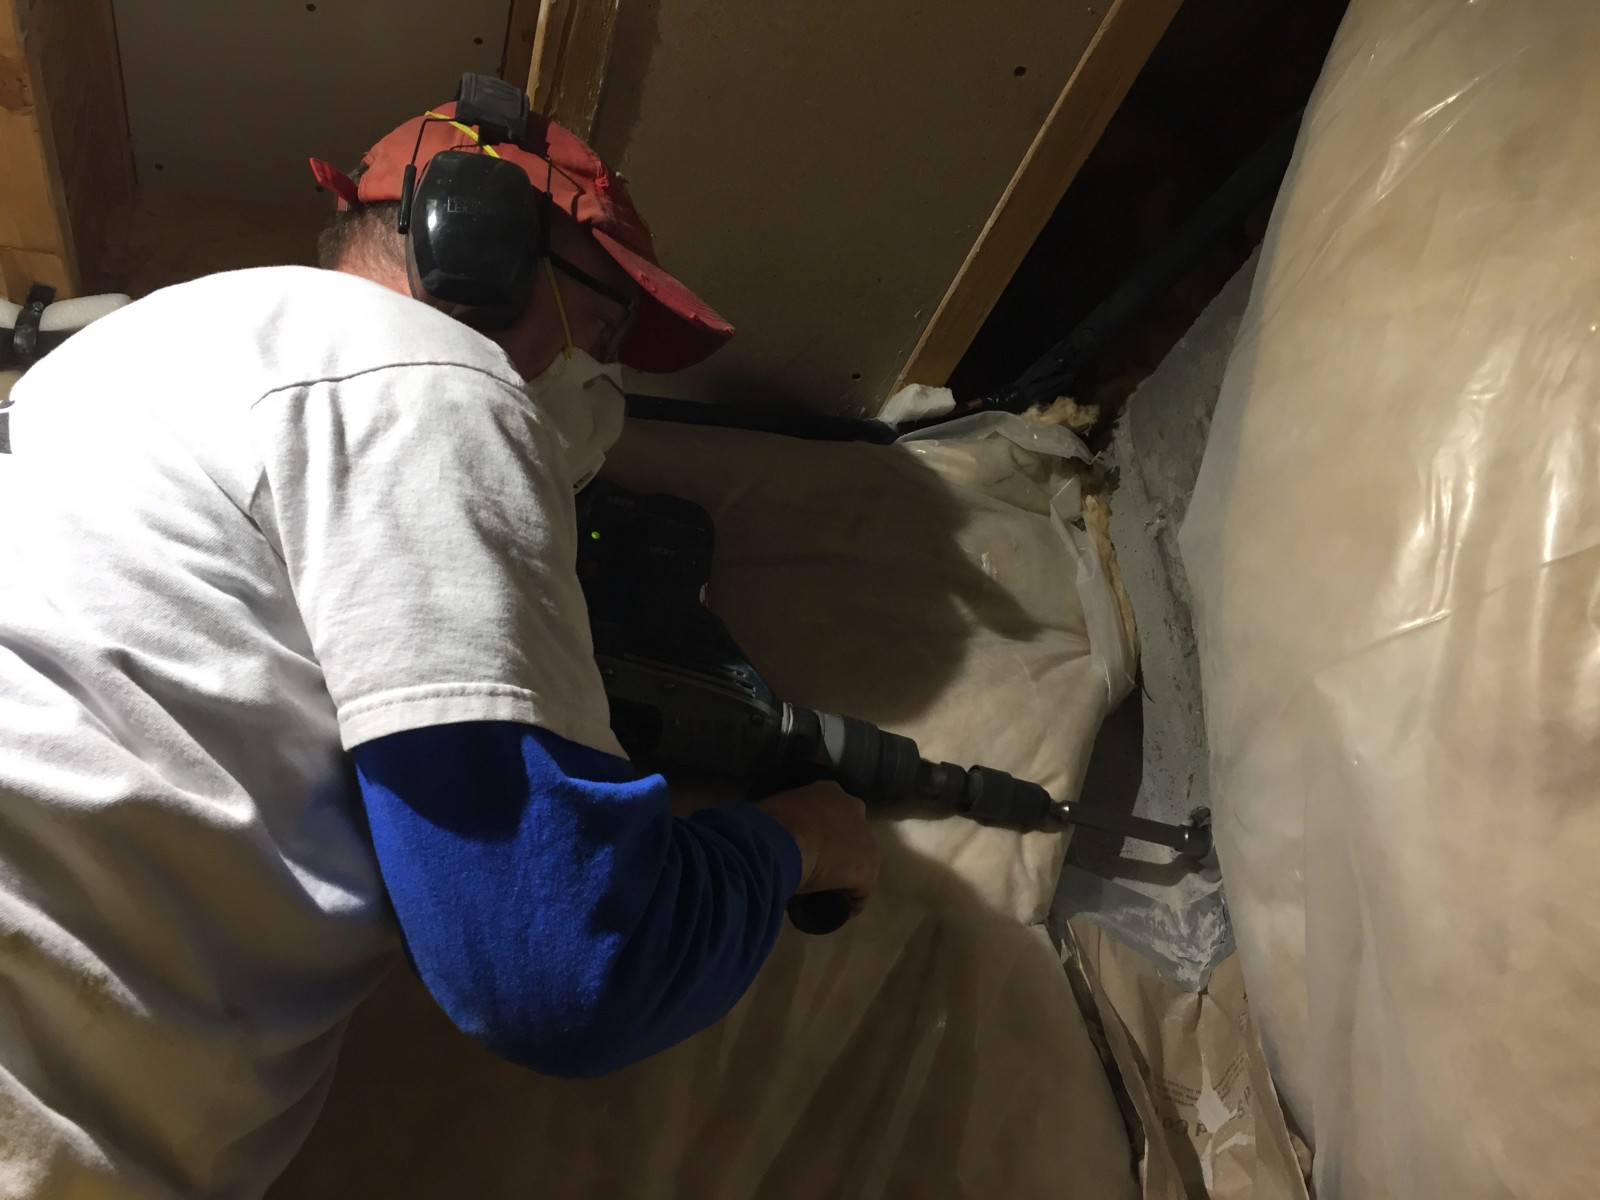 hight resolution of using a hammer drill and a carbide tip hole saw drill to create an exit hole to run a condensation drain line electrical and pressurized supply lines to an